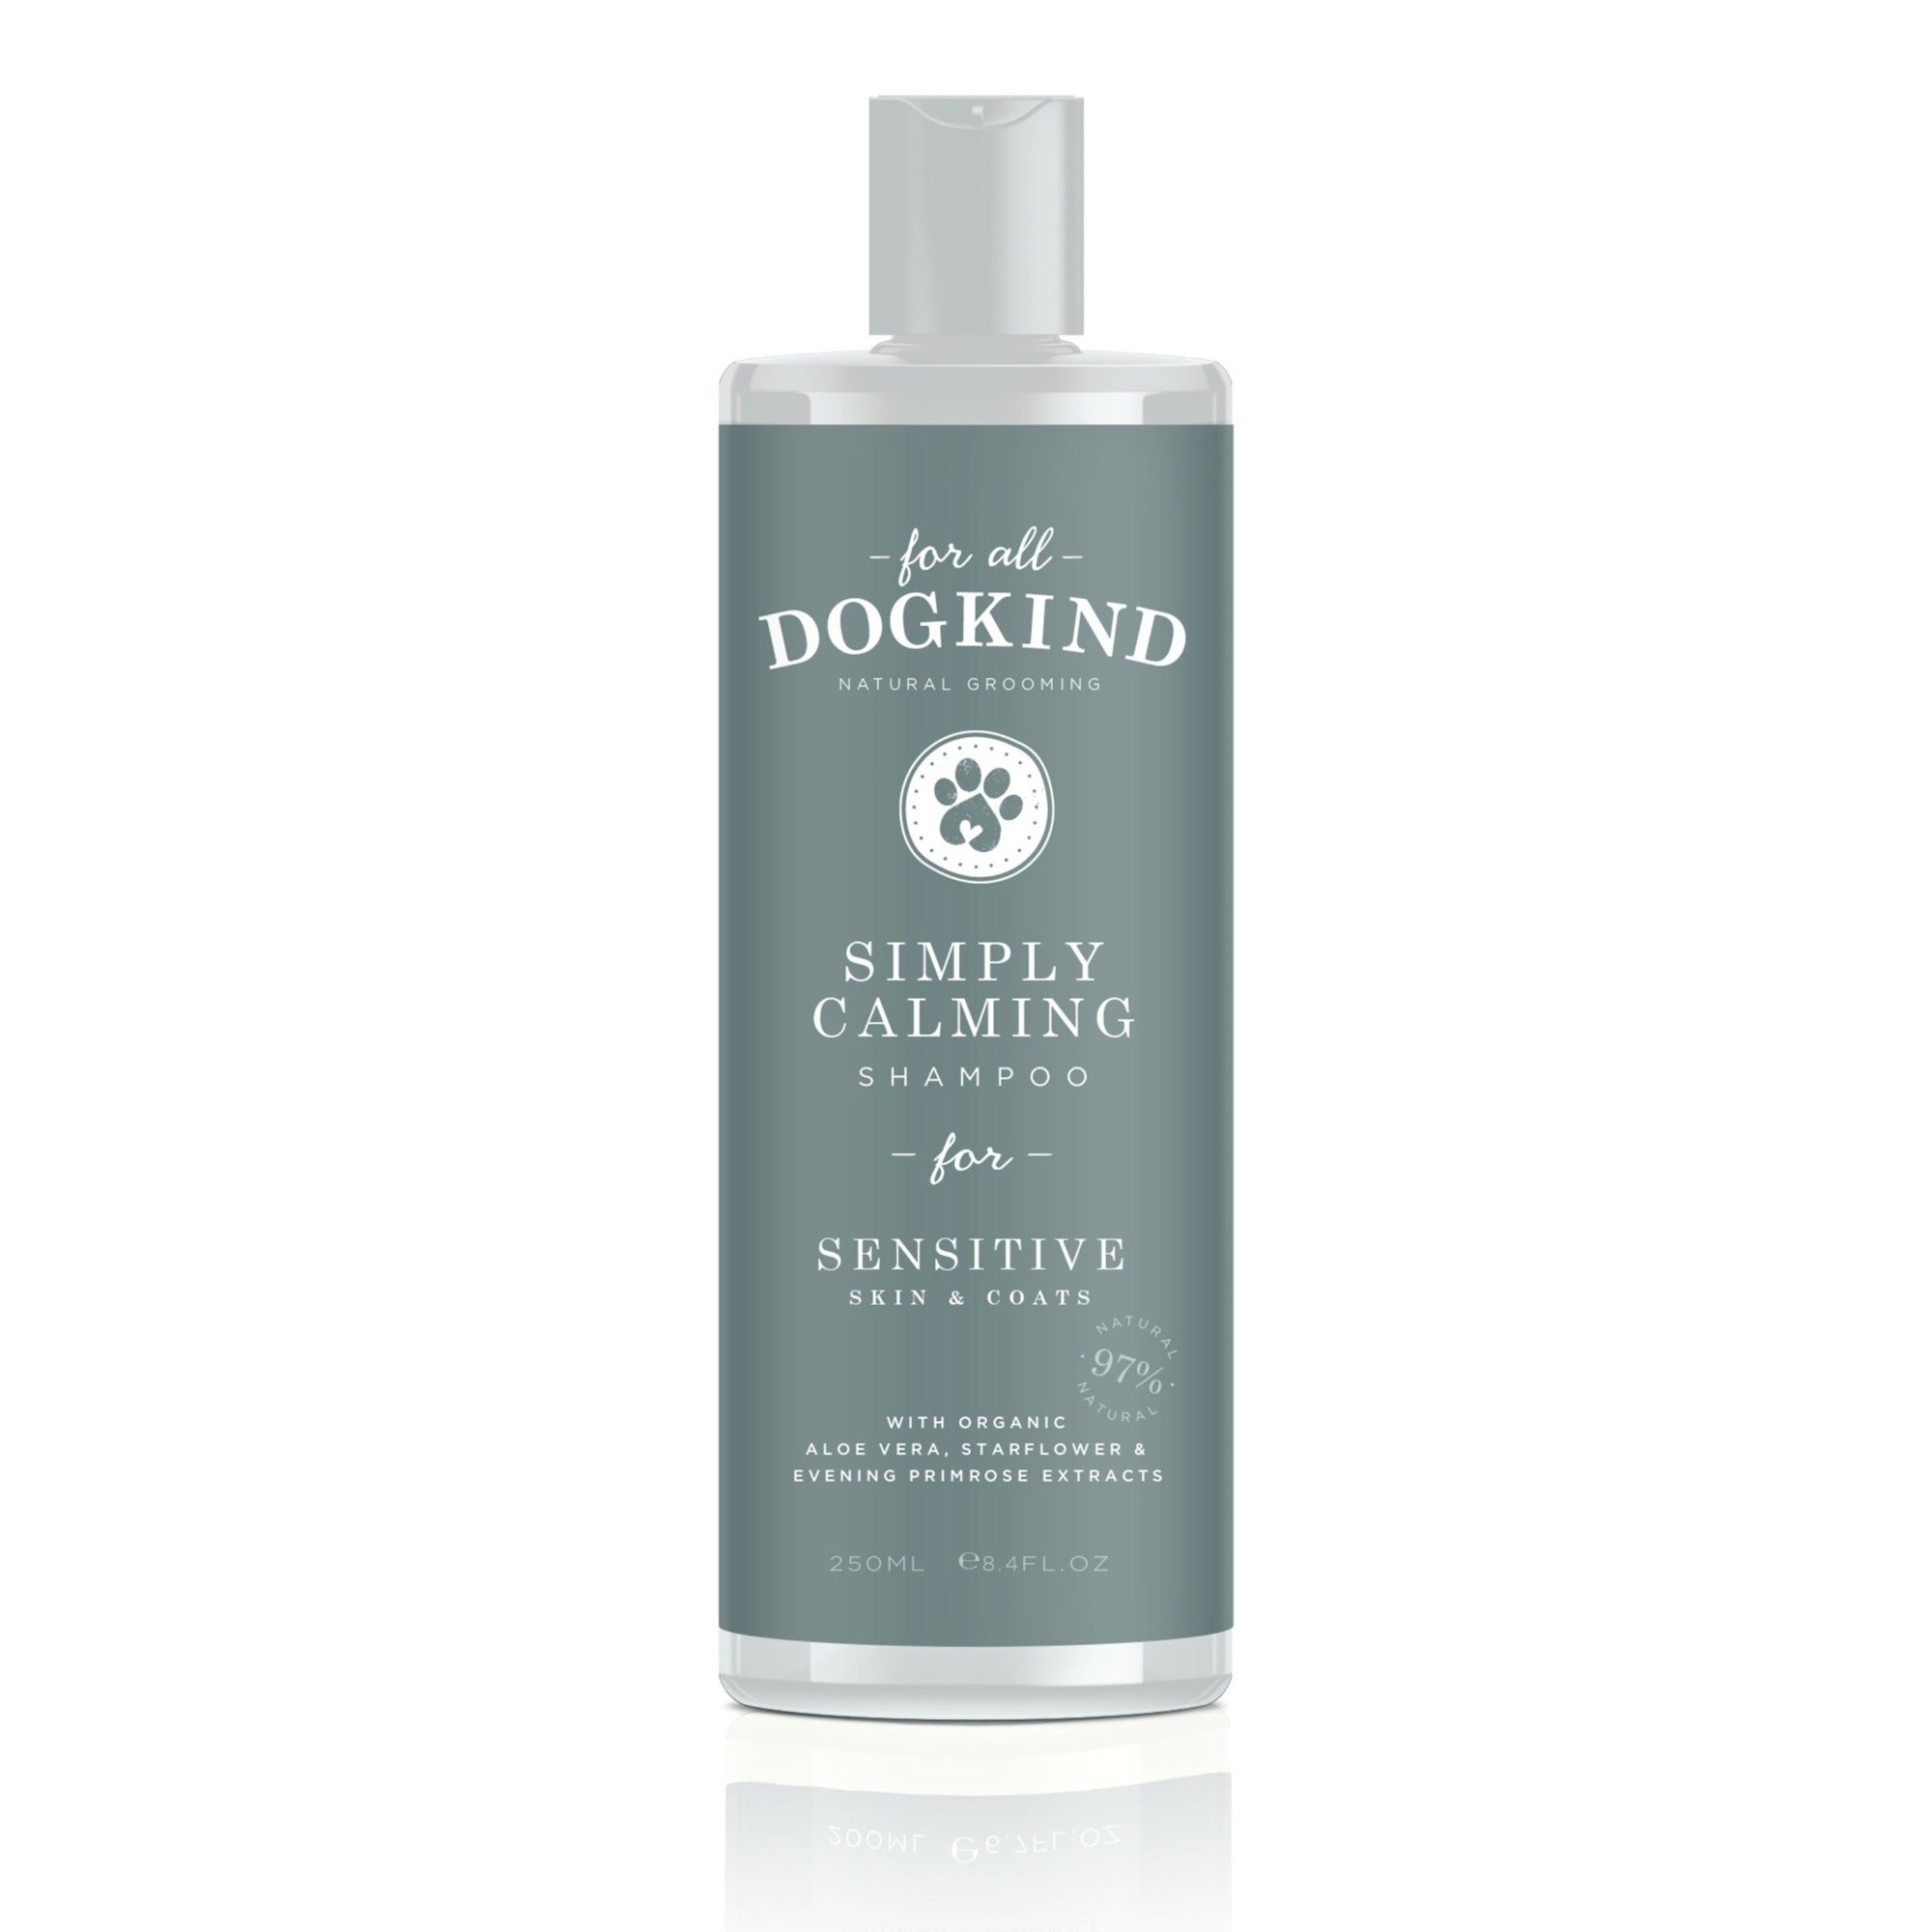 Simply Calming Dog Shampoo For Sensitive Skin and Coats By Dogkind